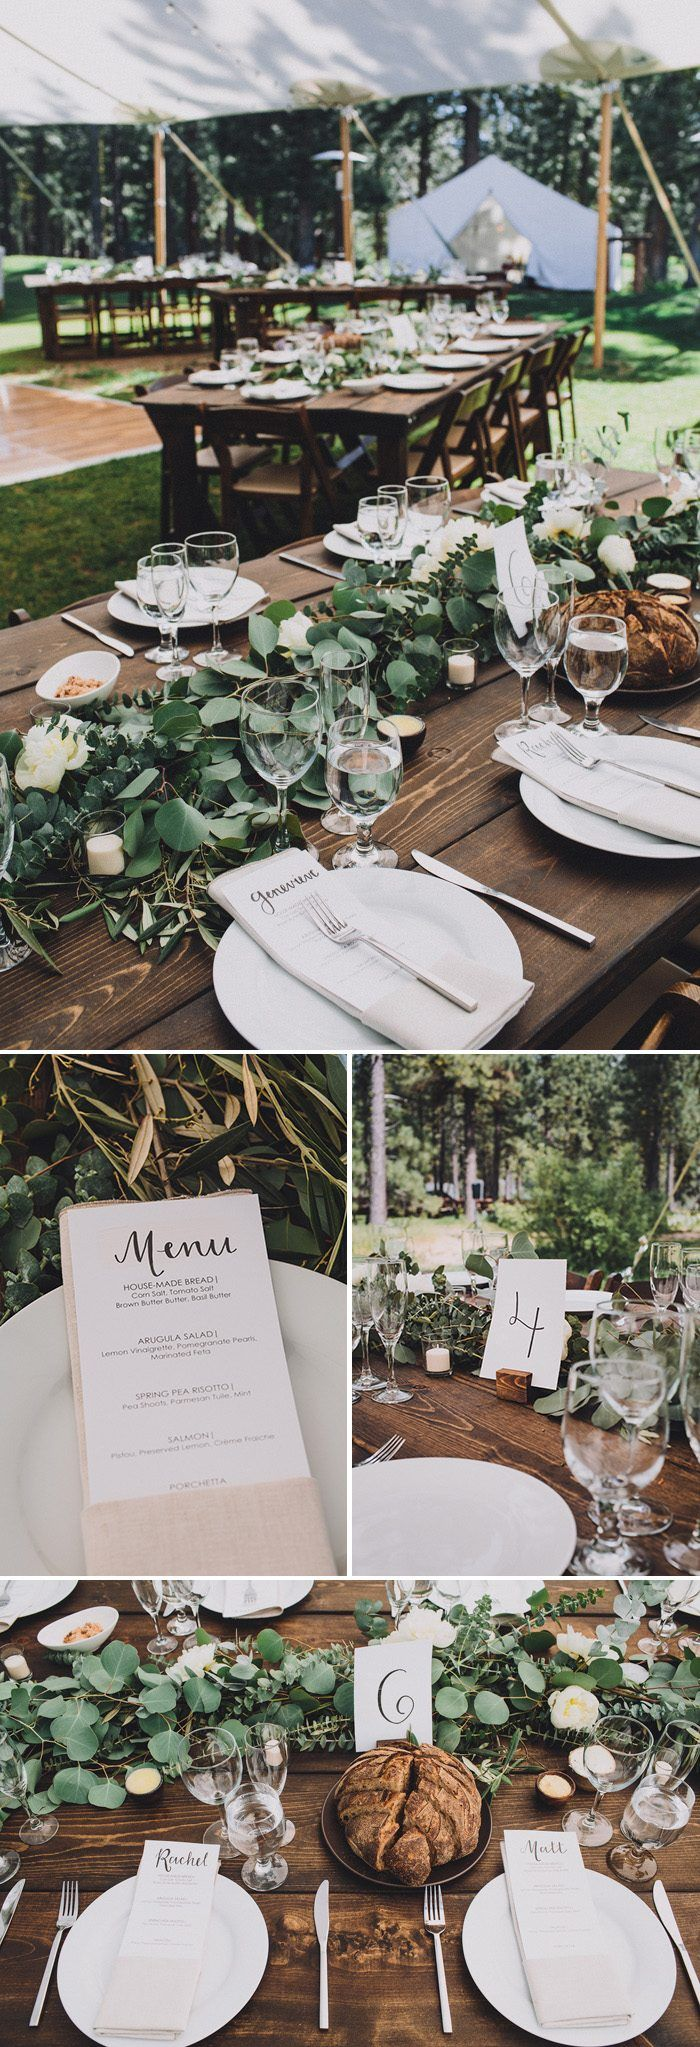 This wedding at Chalet View Lodge features organic decor, a mid-century modern inspired lounge tent, and a surprise second line band.